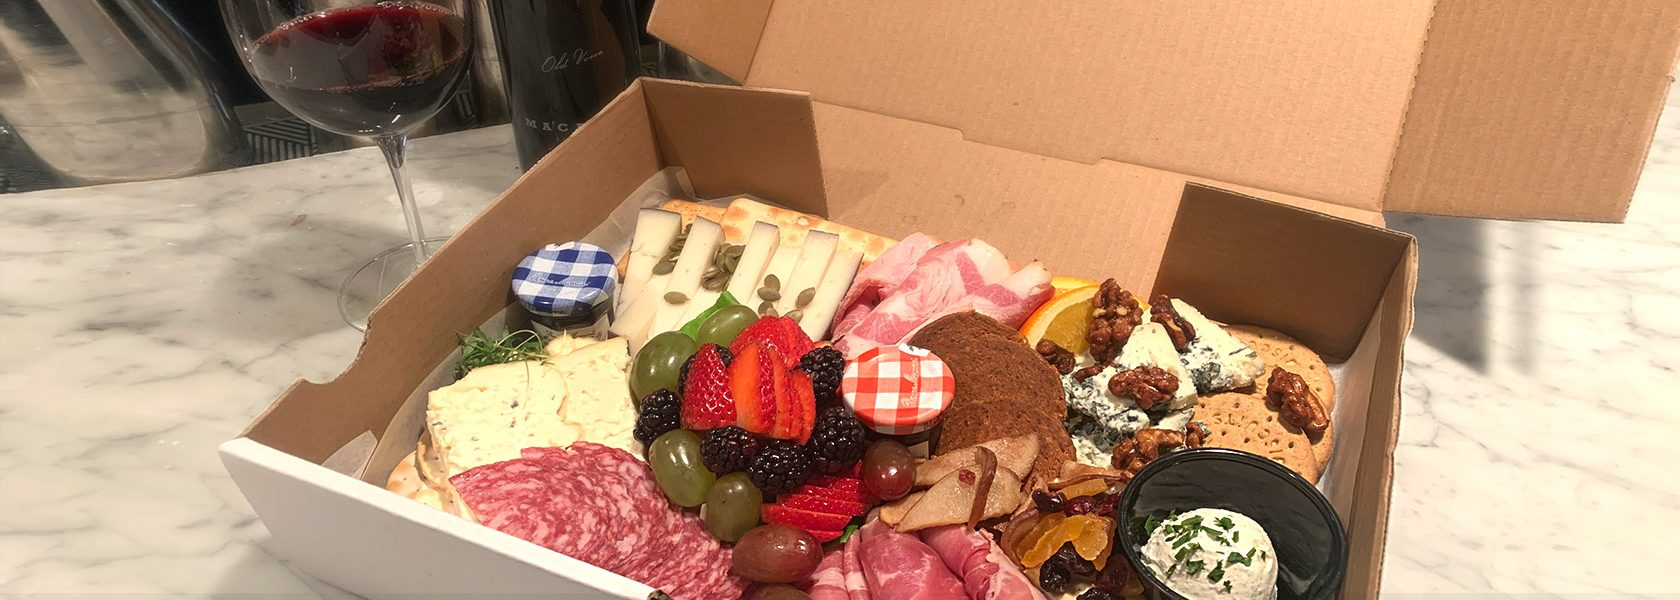 Charcuterie package